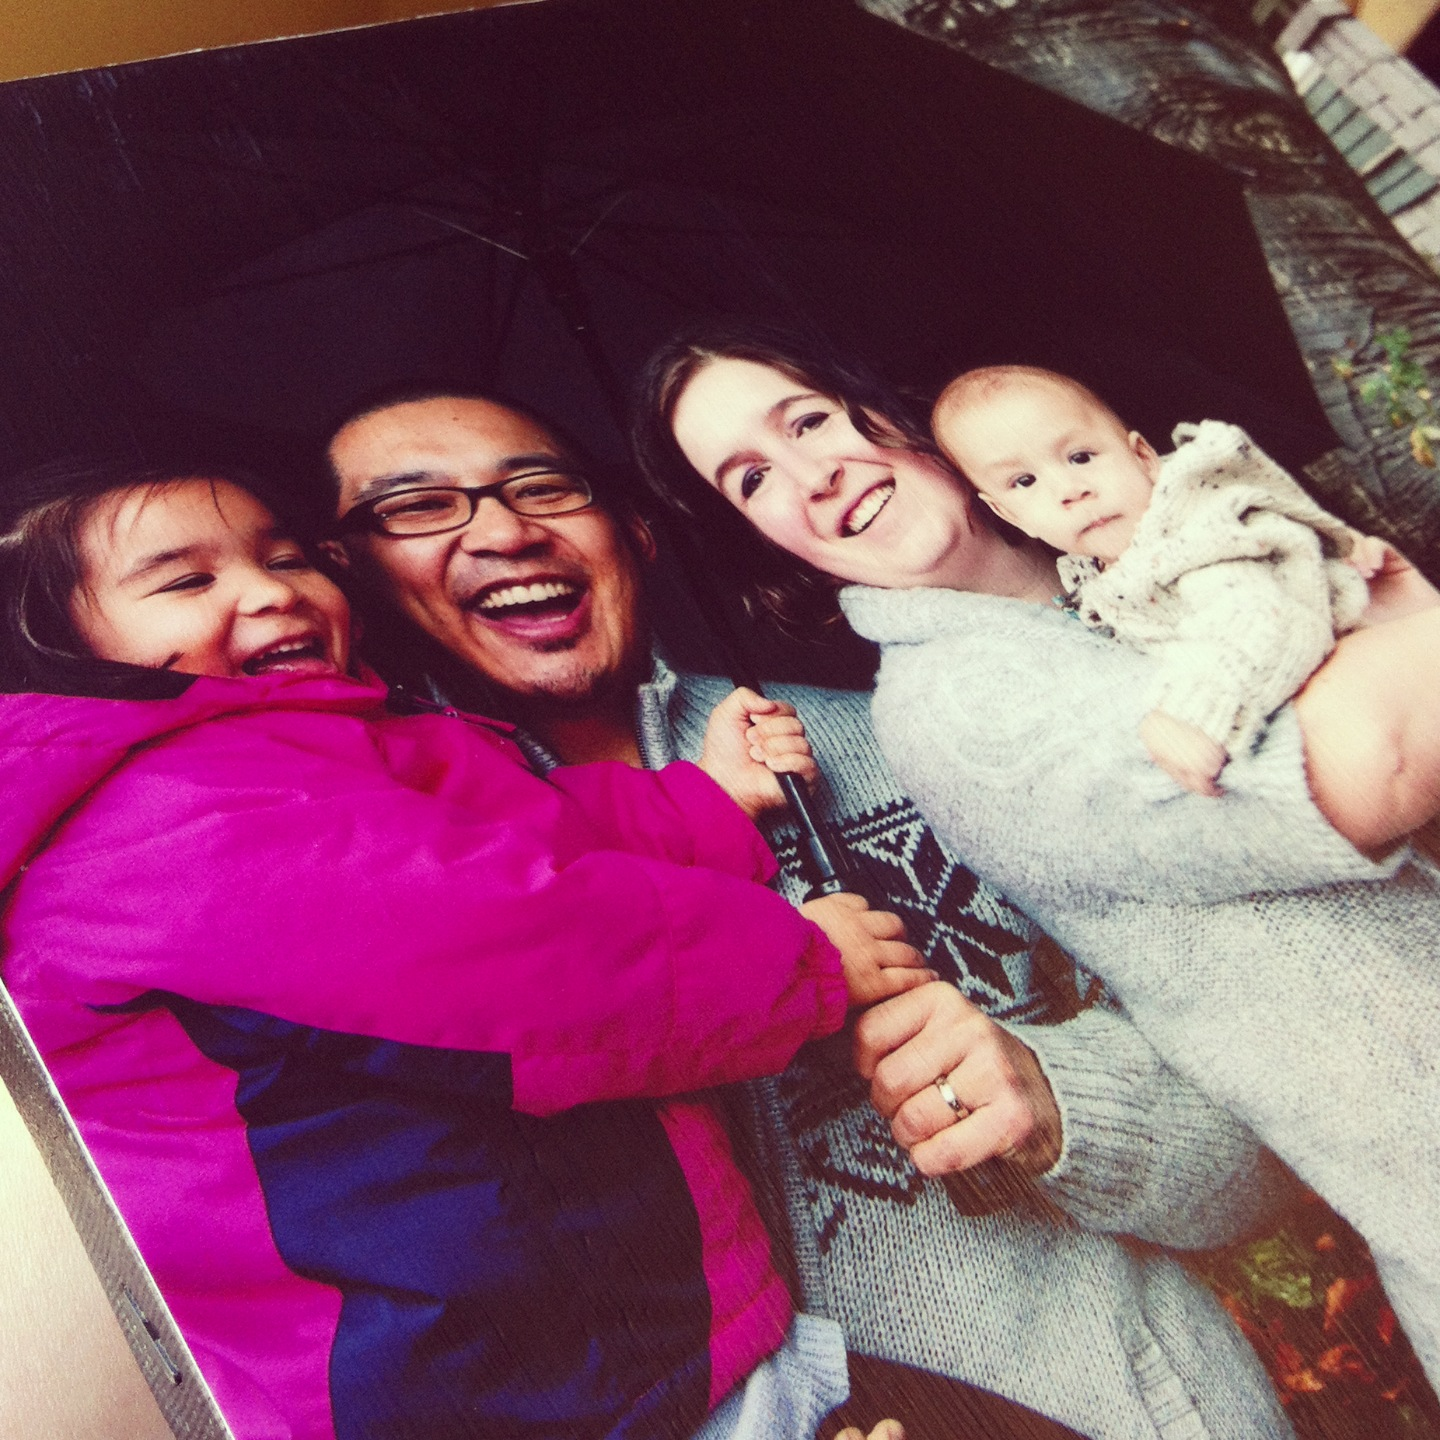 Mounting photo to canvas tutorial A great handmade gift for under $5.00 5